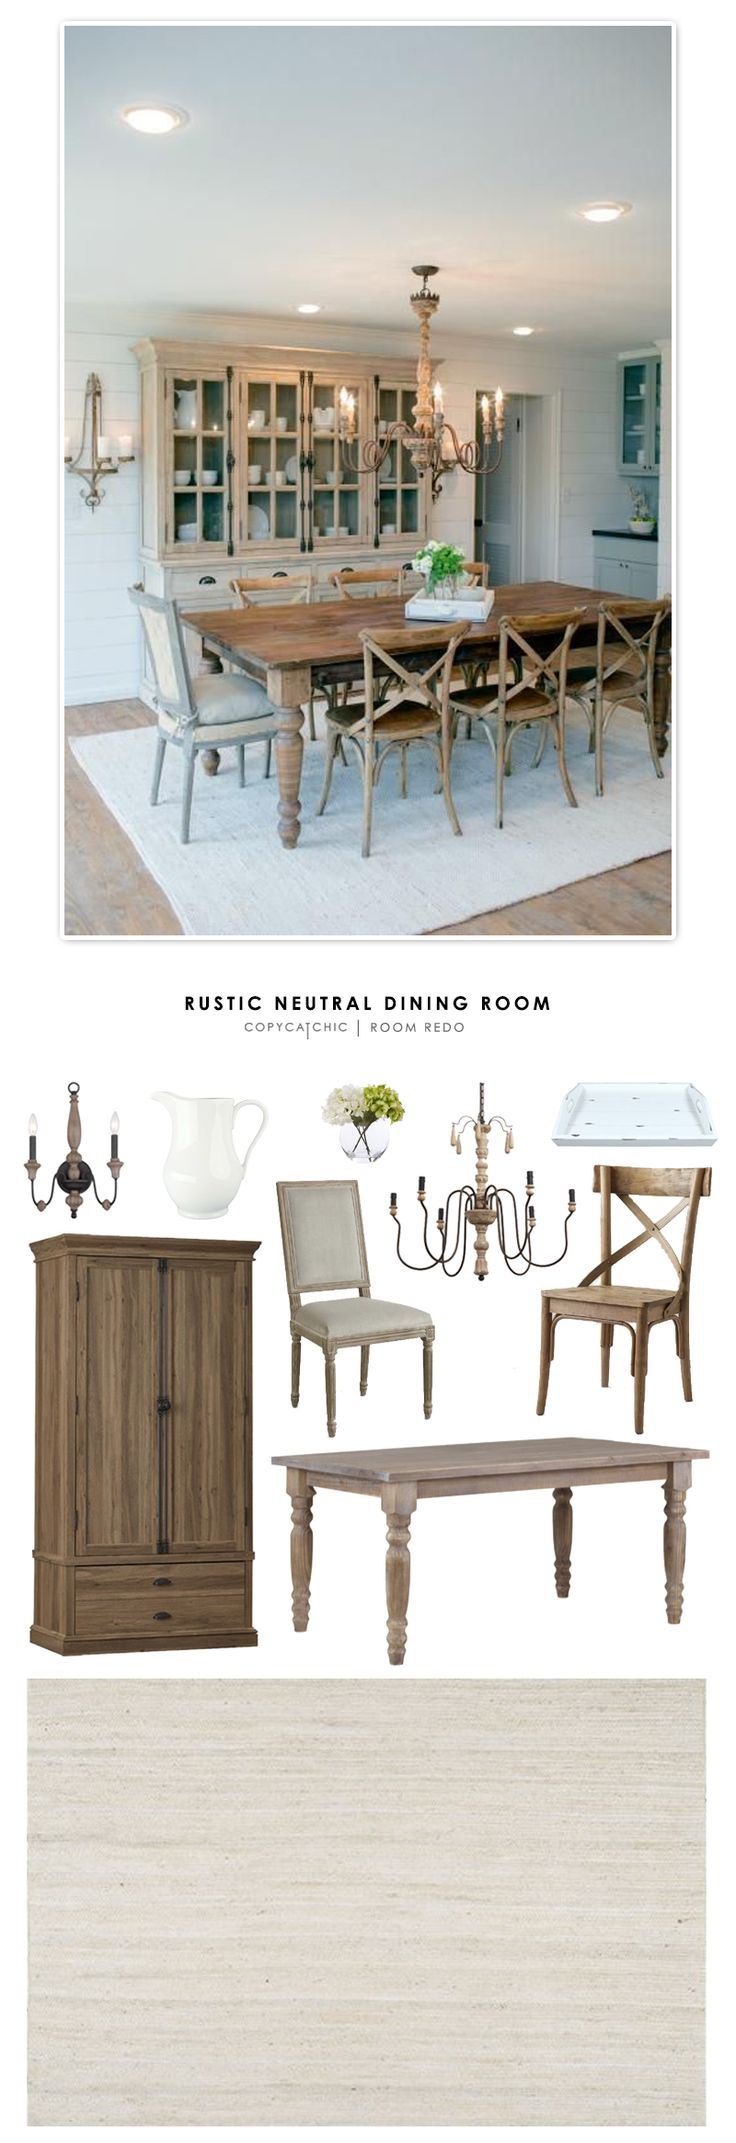 Copy Cat Chic Room Redo | Rustic Neutral Dining Room